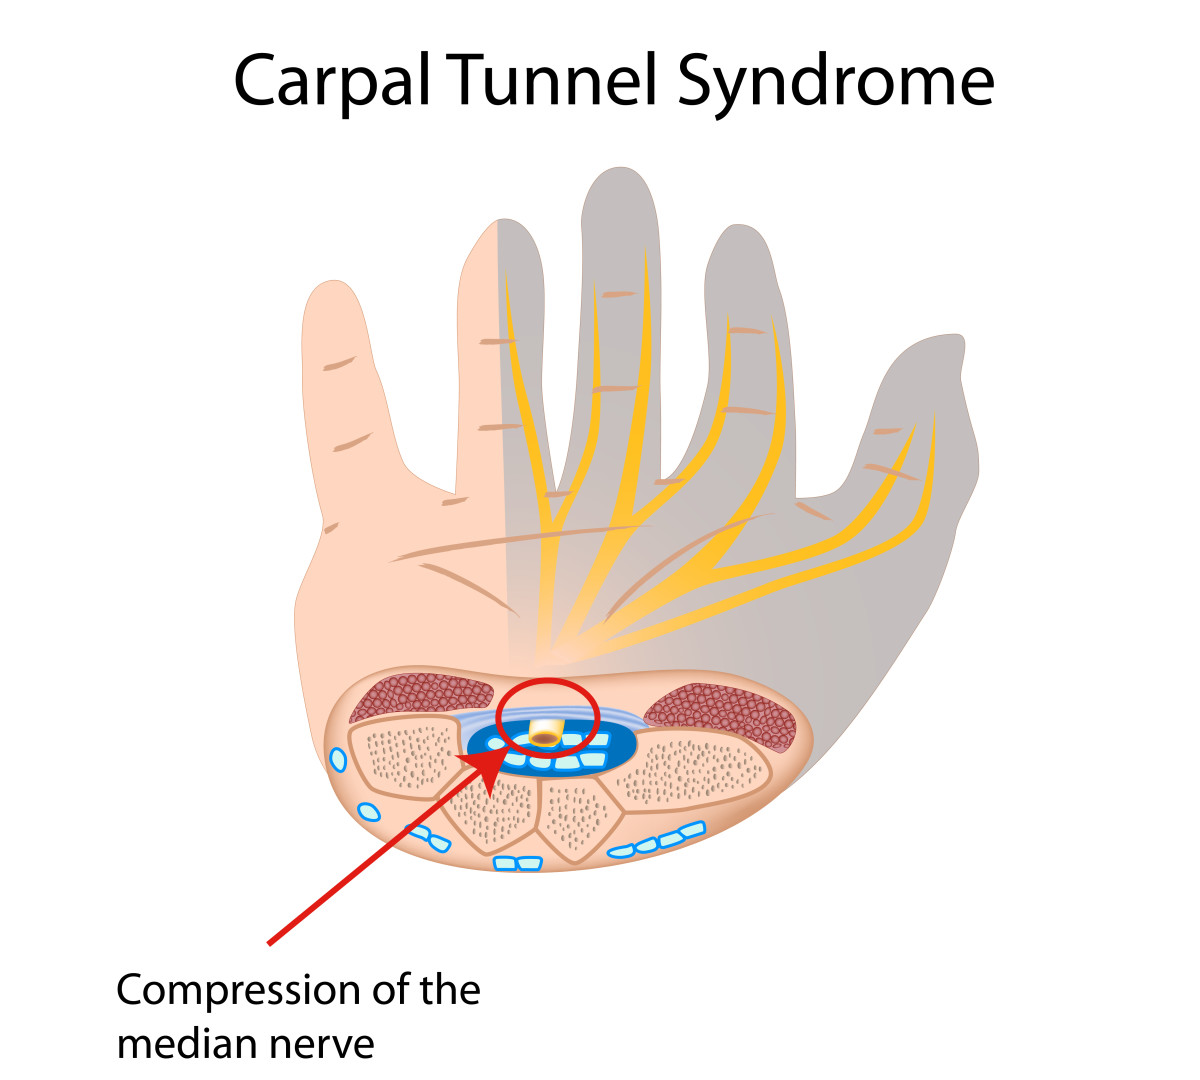 A diagram of the Carpal Tunnel and median nerve in the wrist